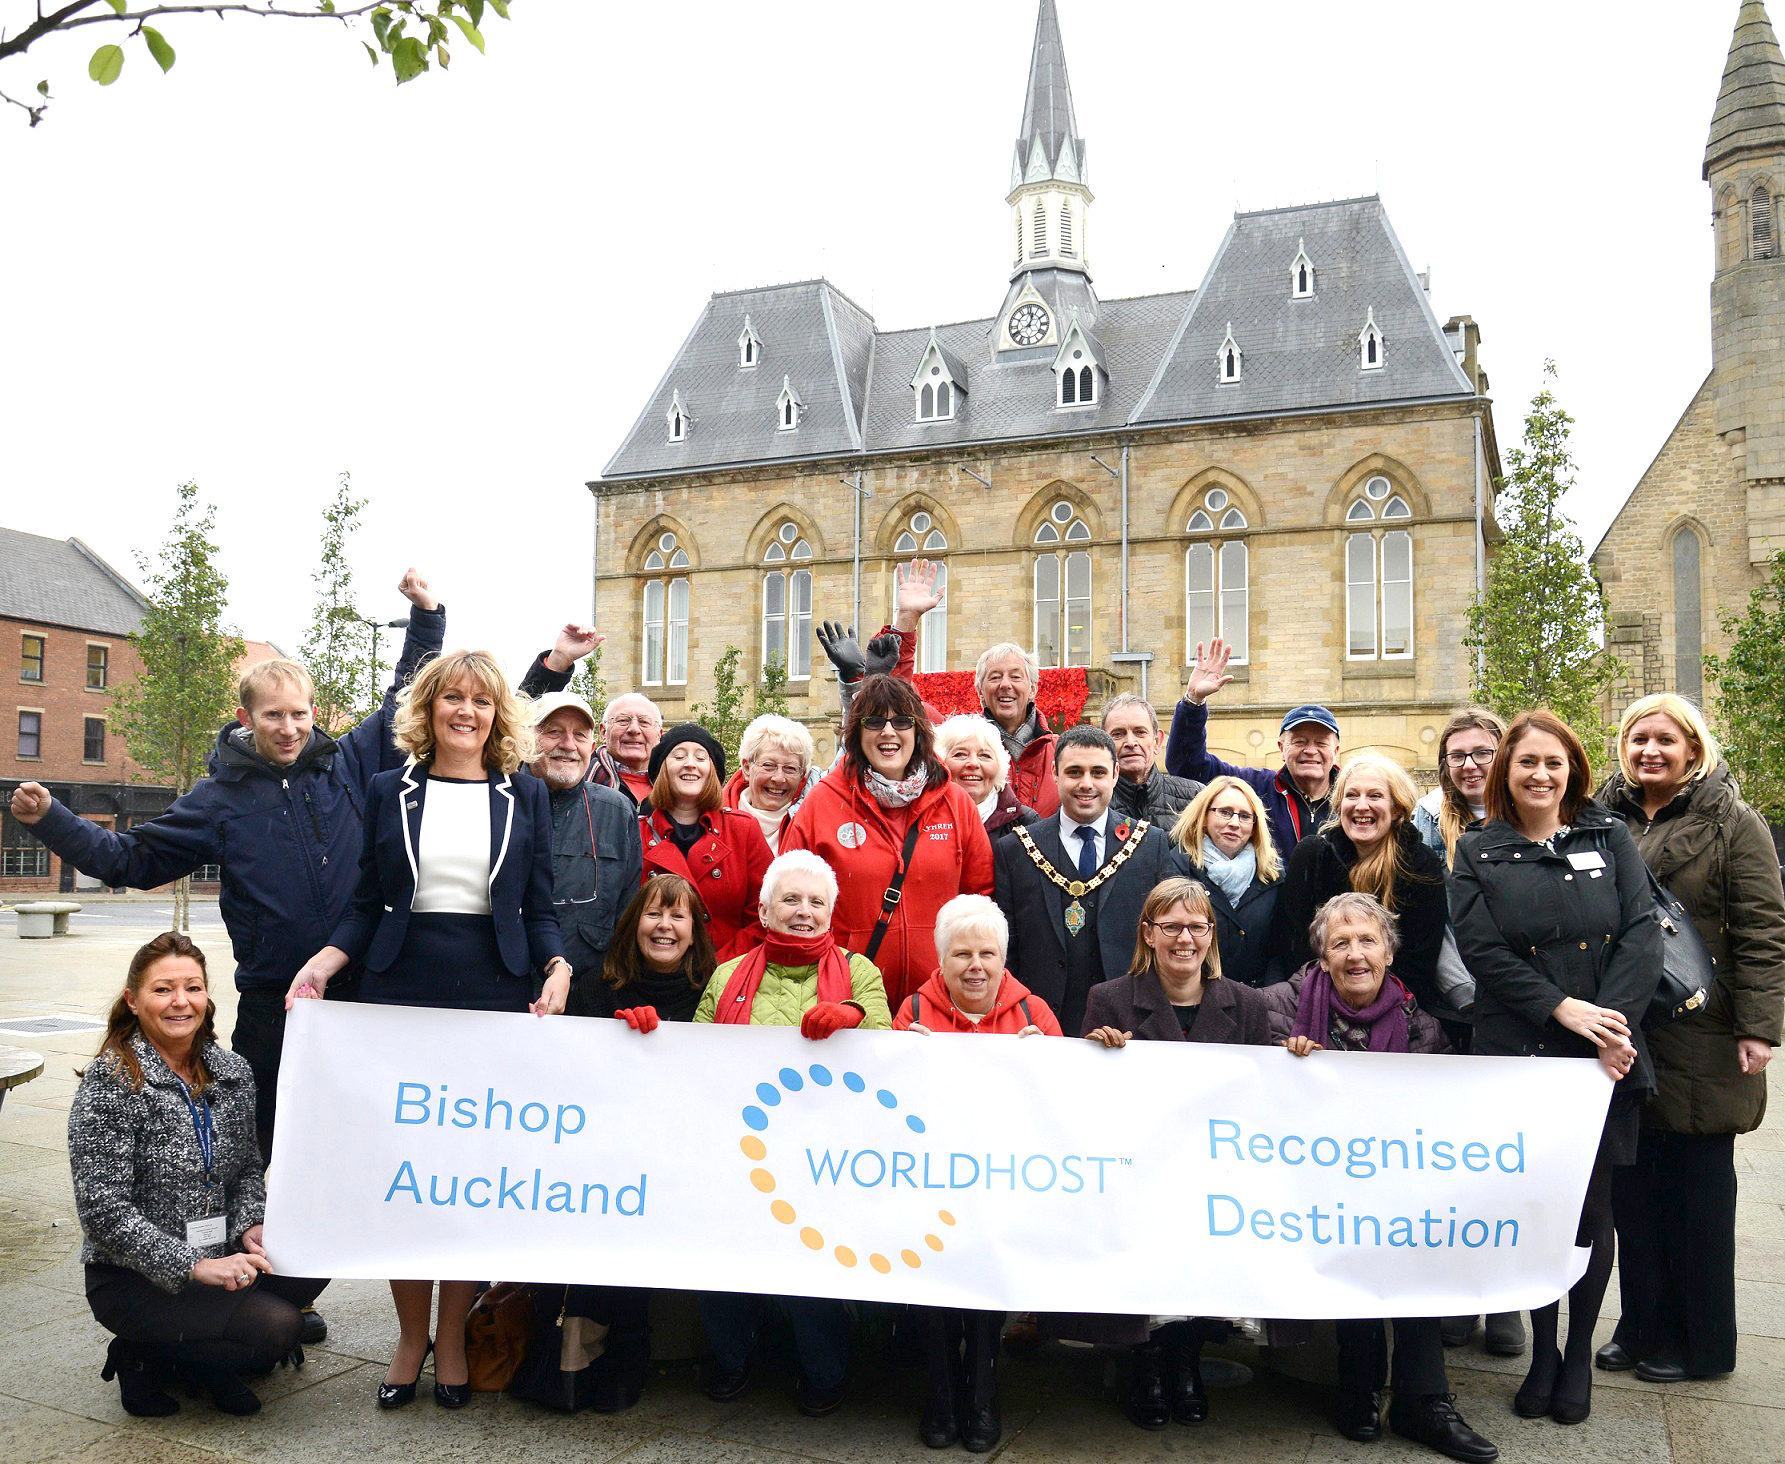 Bishop Auckland Prepares to Host 1000's of New Visitors